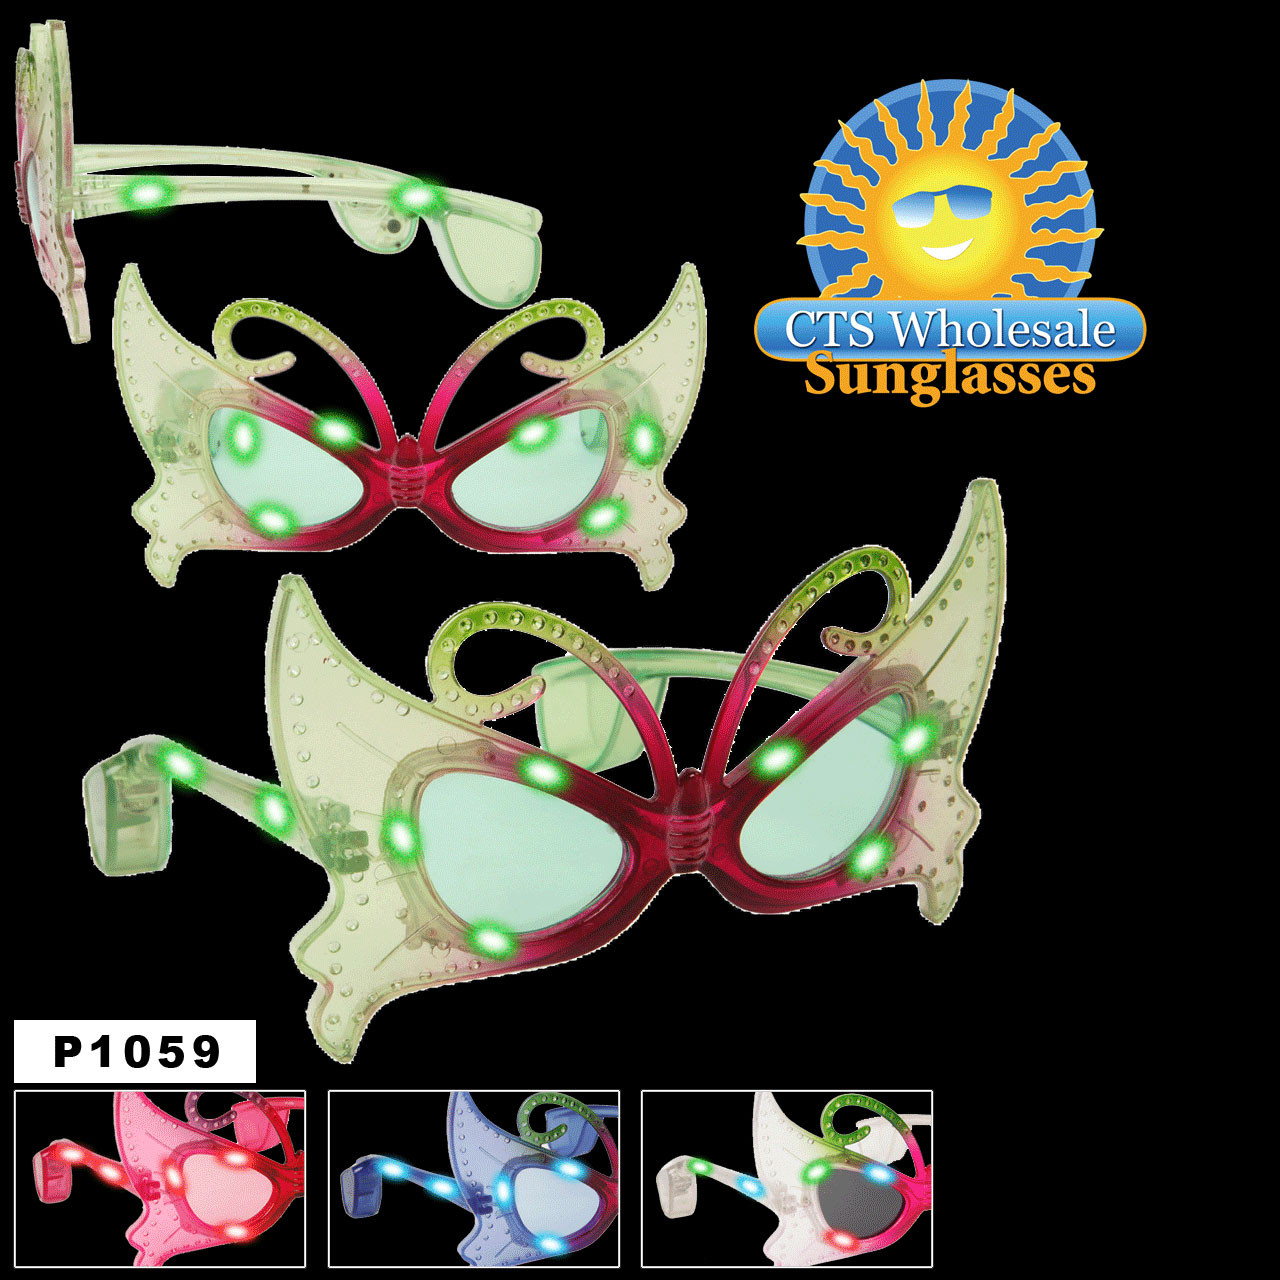 Flashing Sunglasses ~ Butterfly Eyes! ~ P1059 (Assorted Colors) (12 pcs.)